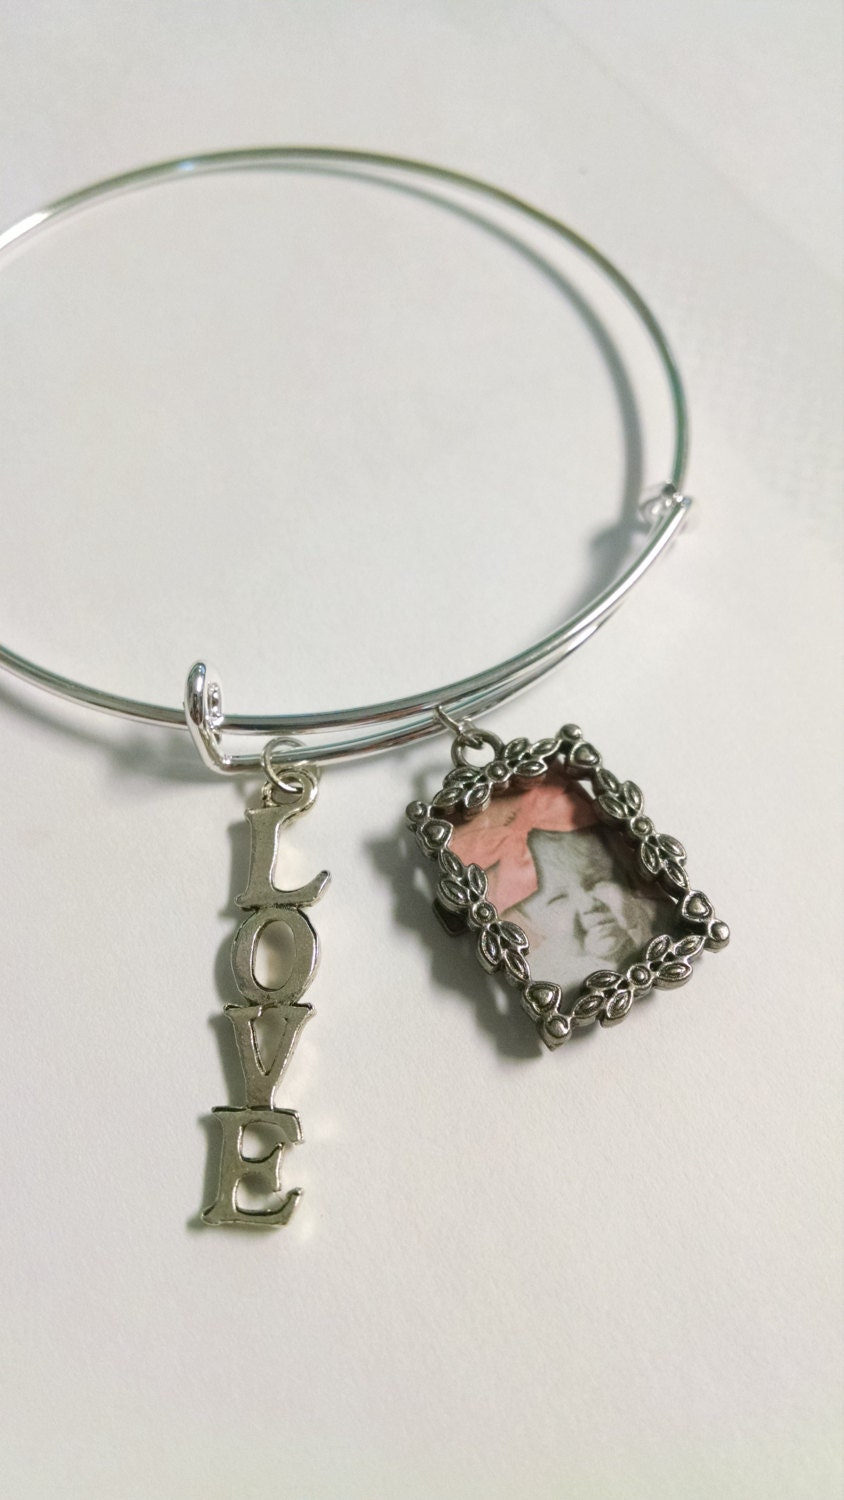 alex and ani inspired bracelet silver by juxtapositionartist